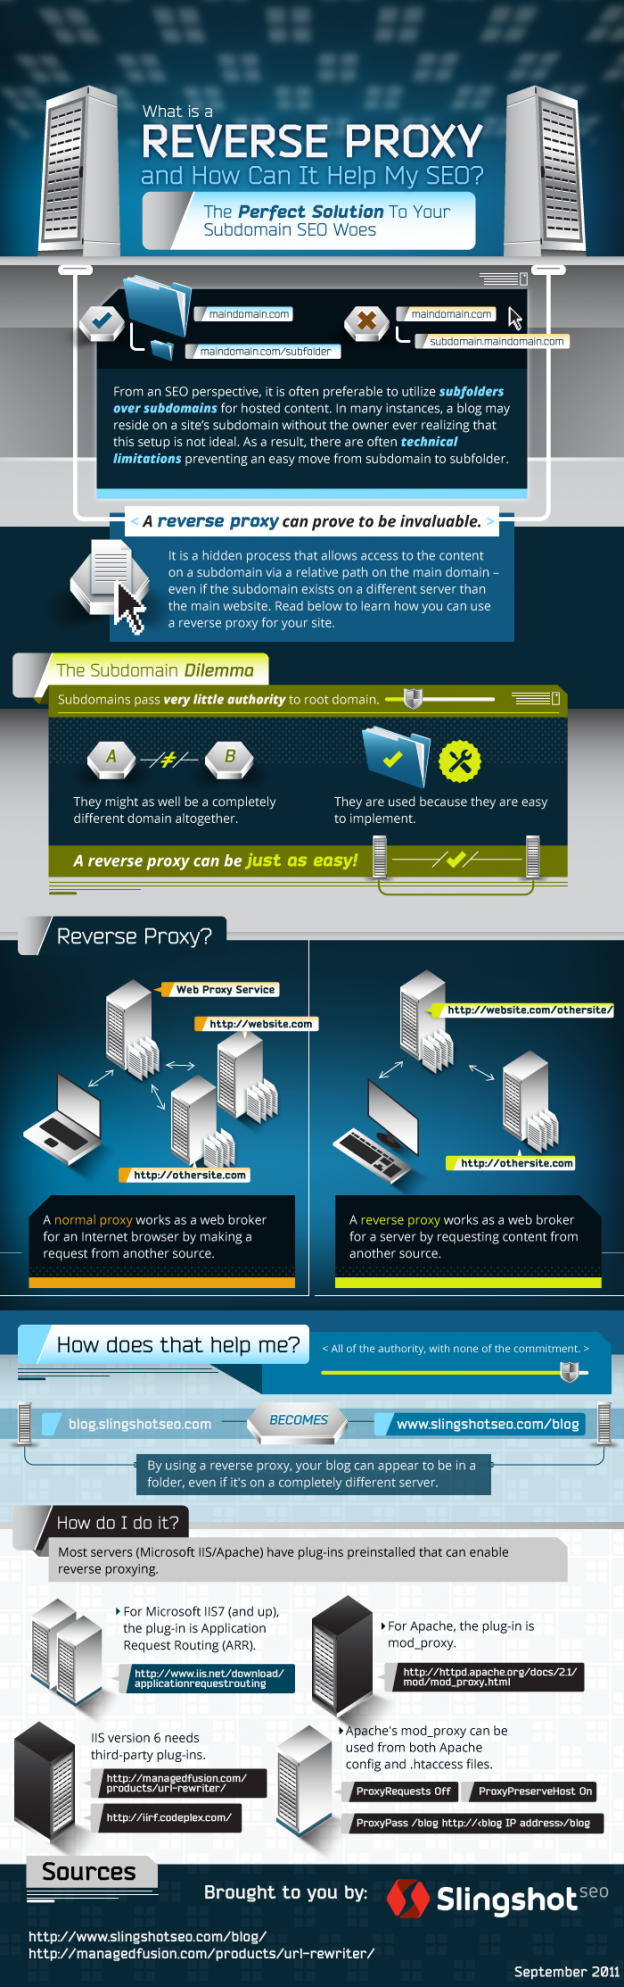 What is a Reverse Proxy and How Can it Help My SEO? - Moz